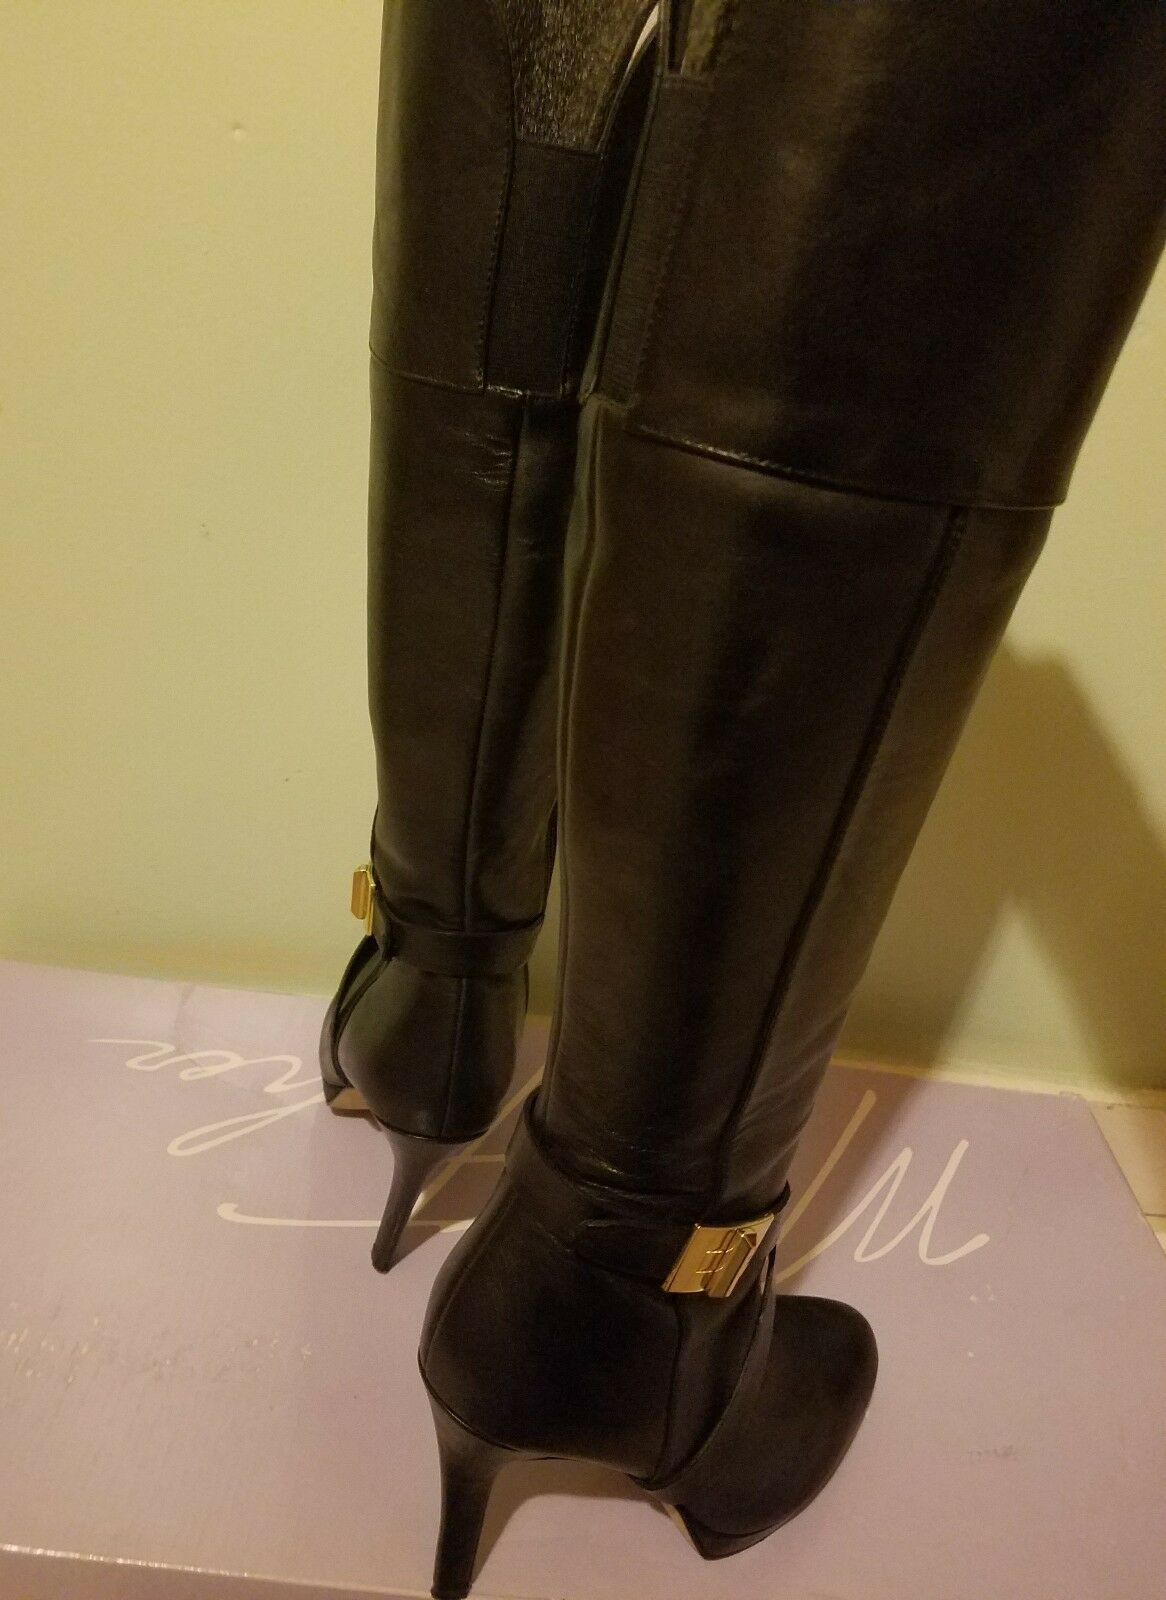 Marc fisher tall black boots 5.5 5.5 5.5 only used once in great shape with box b31c4b